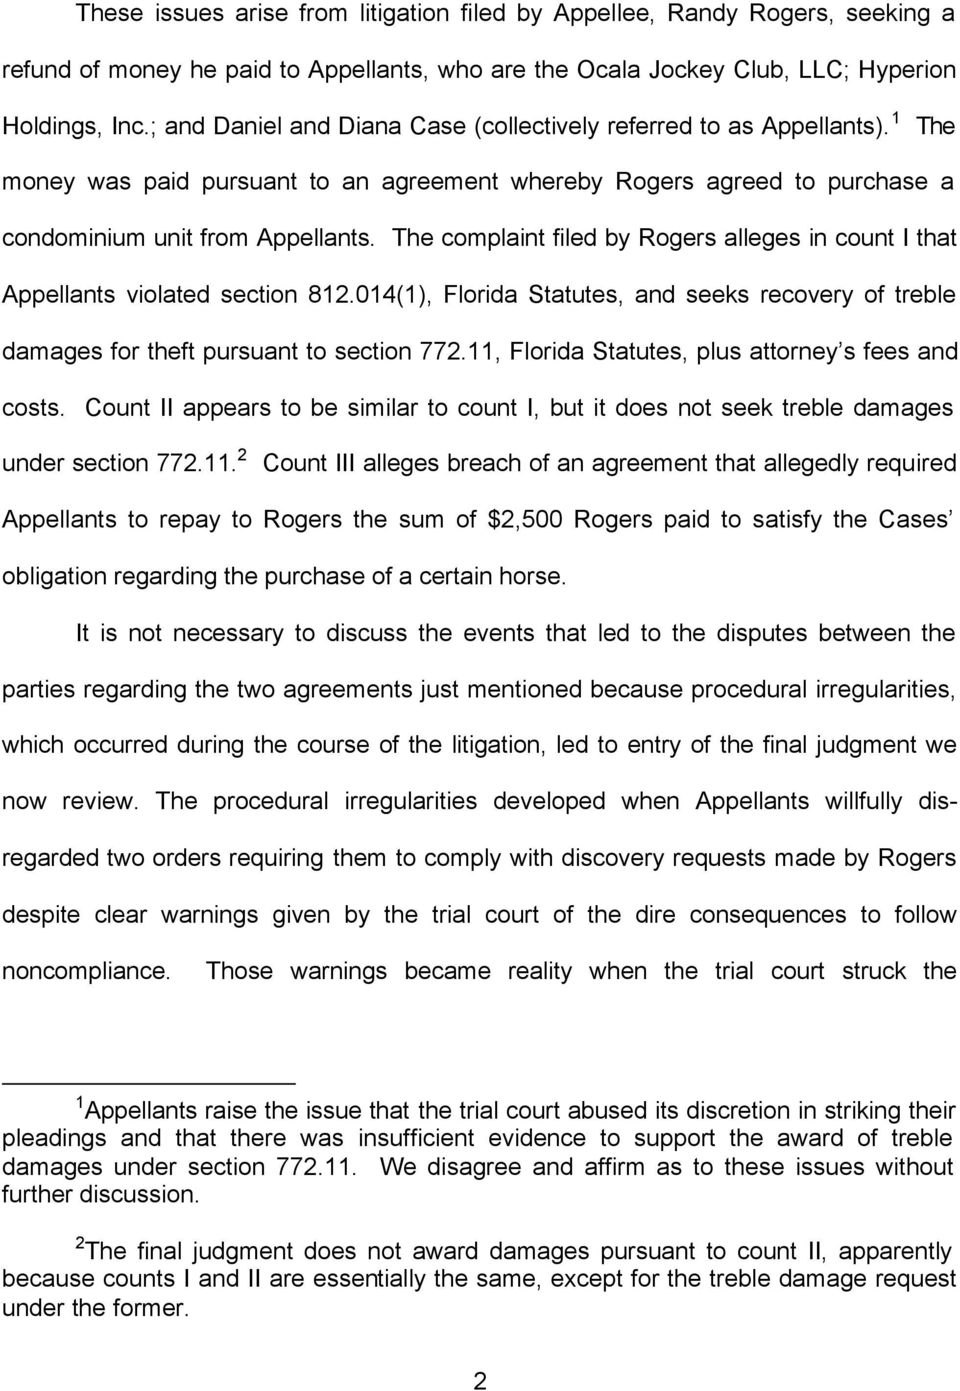 The complaint filed by Rogers alleges in count I that Appellants violated section 812.014(1), Florida Statutes, and seeks recovery of treble damages for theft pursuant to section 772.